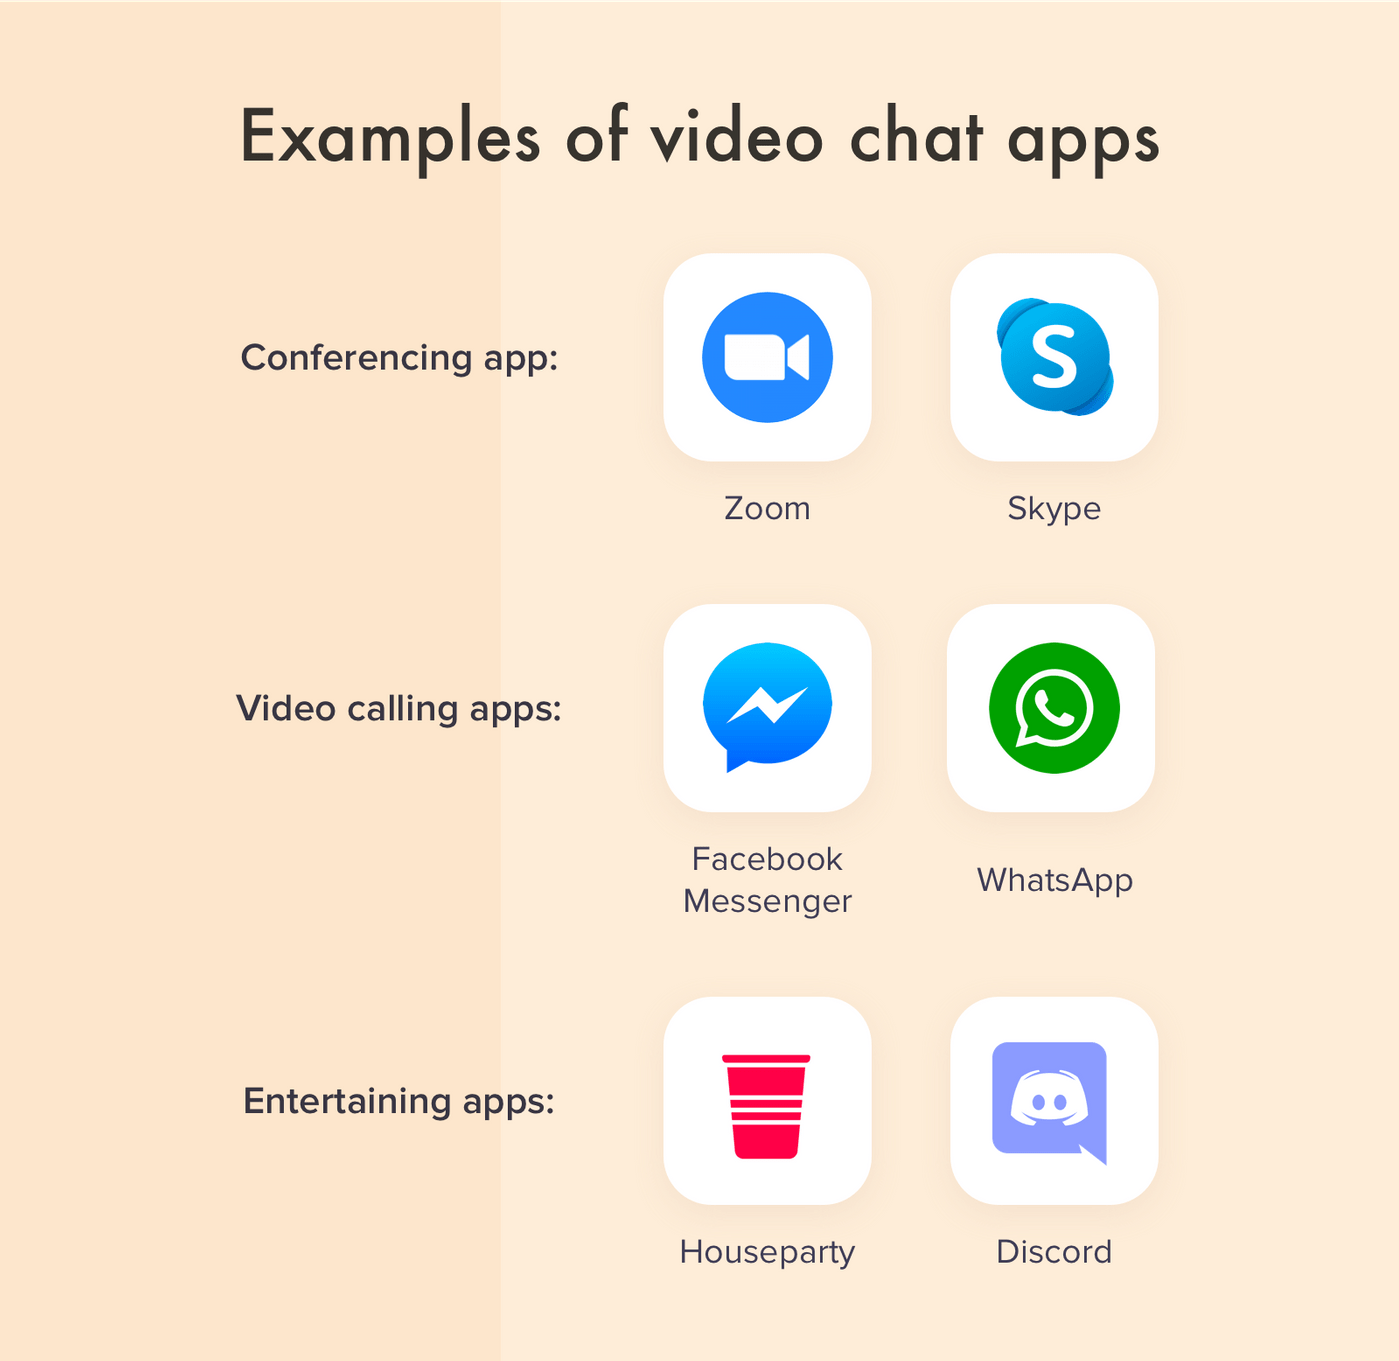 Examples of video chat apps